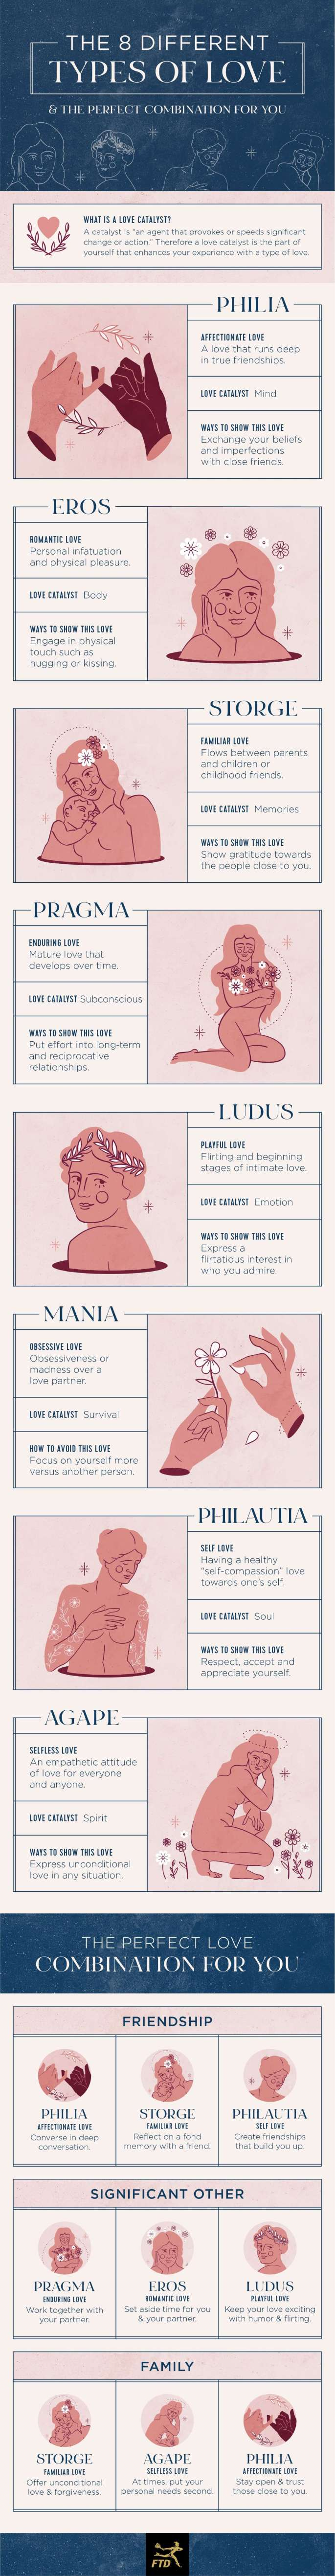 types-of-love-infographic